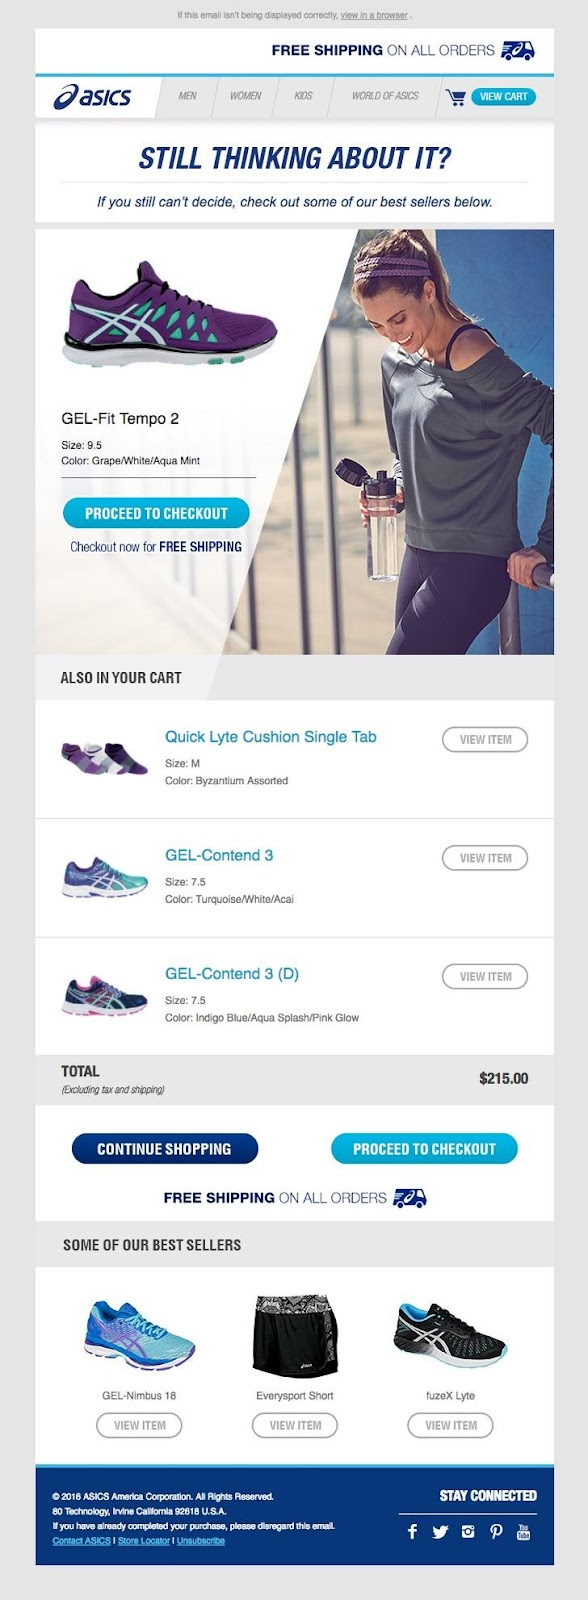 asics-personalized-email-example